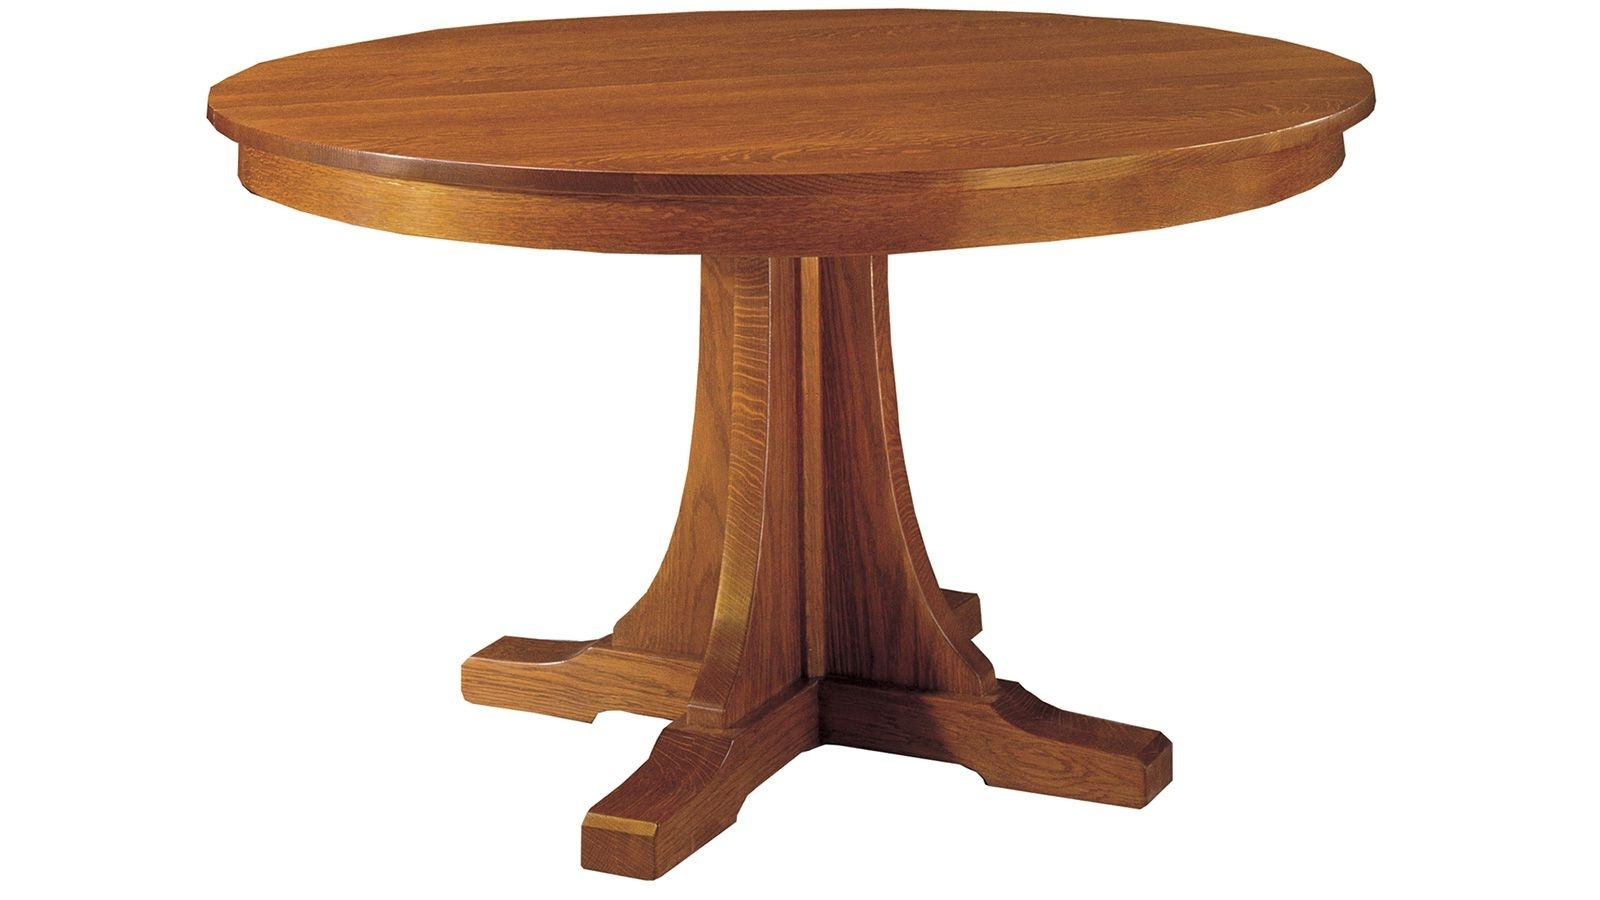 Craftsman Round Dining Tables For Well Known Made In America Out Of Quartersawn White Oak, This Lovely Dining (View 6 of 25)